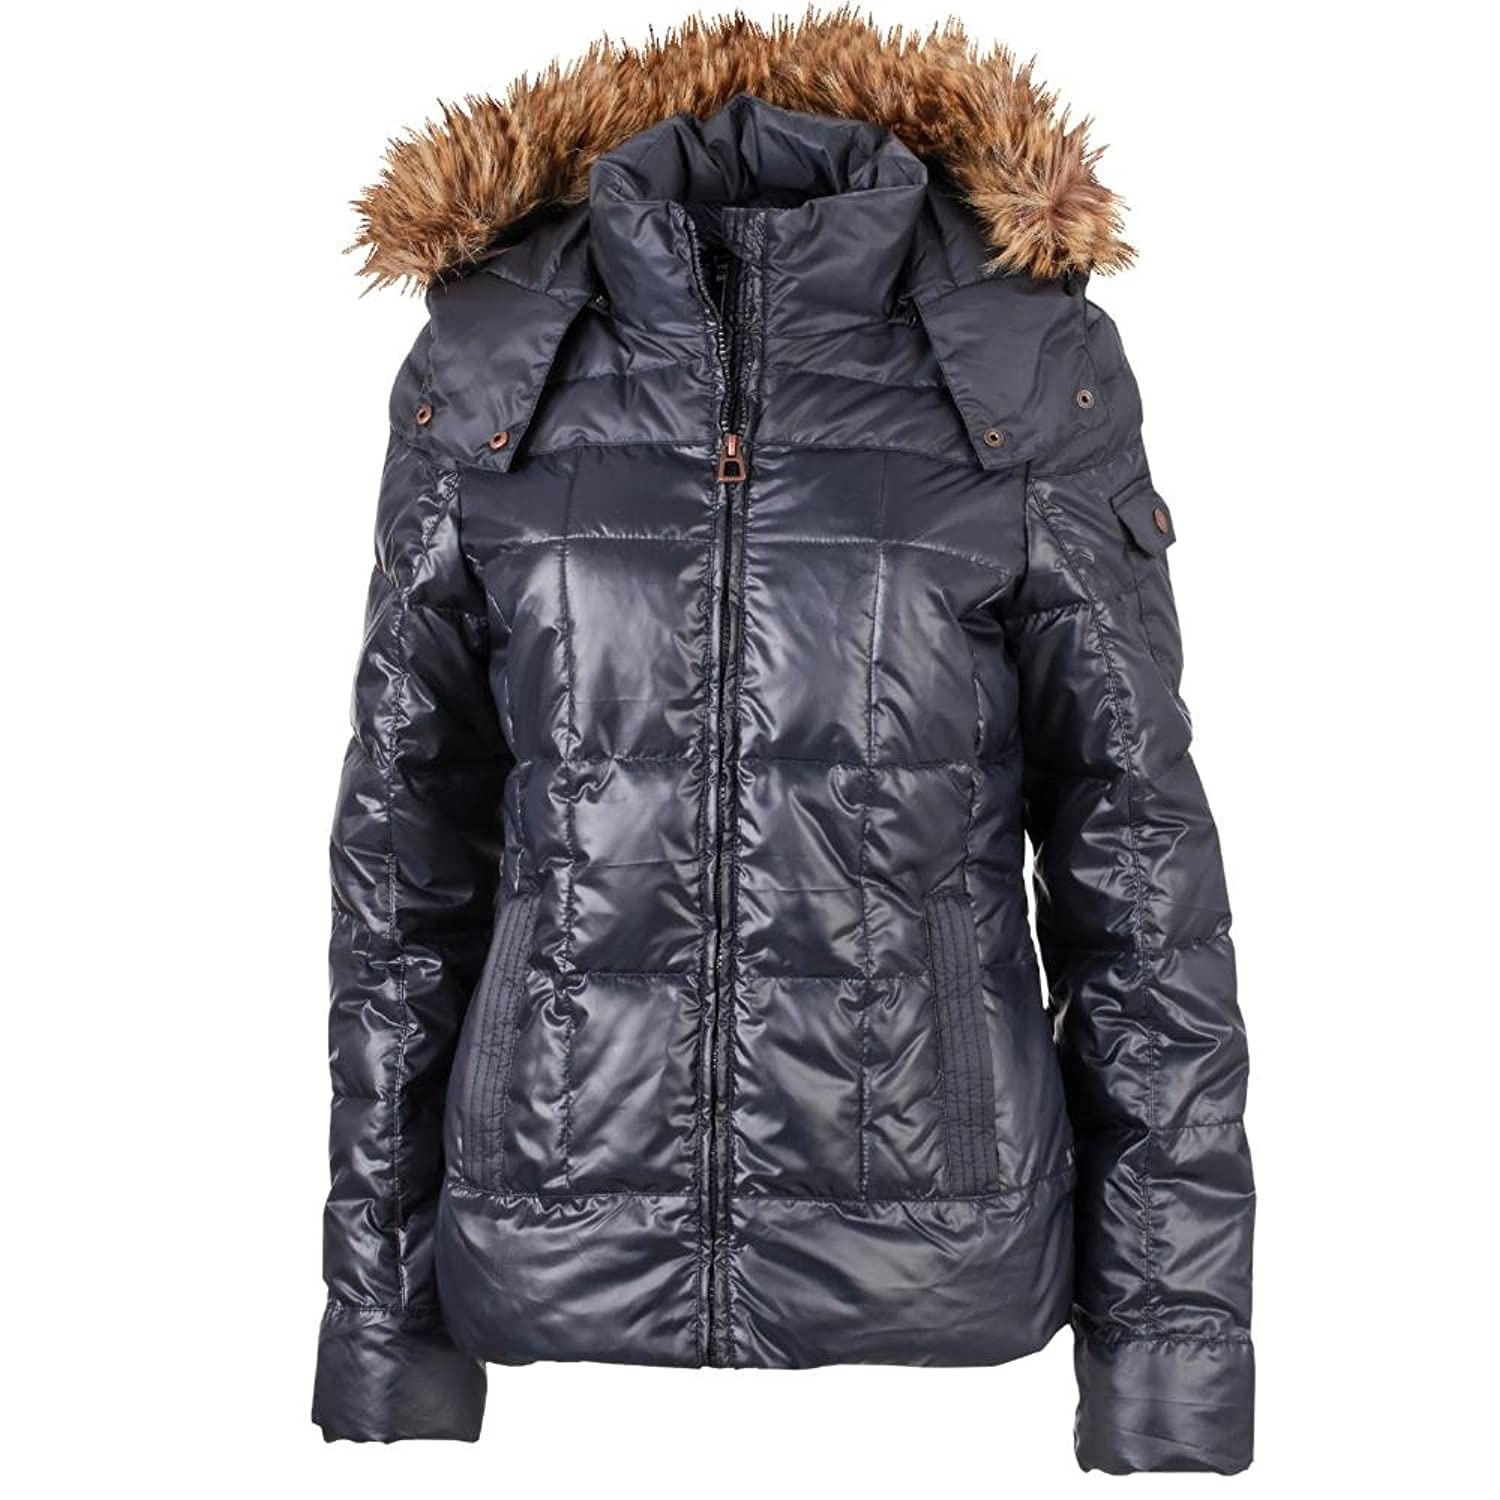 James & Nicholson - Damen Wintersteppjacke